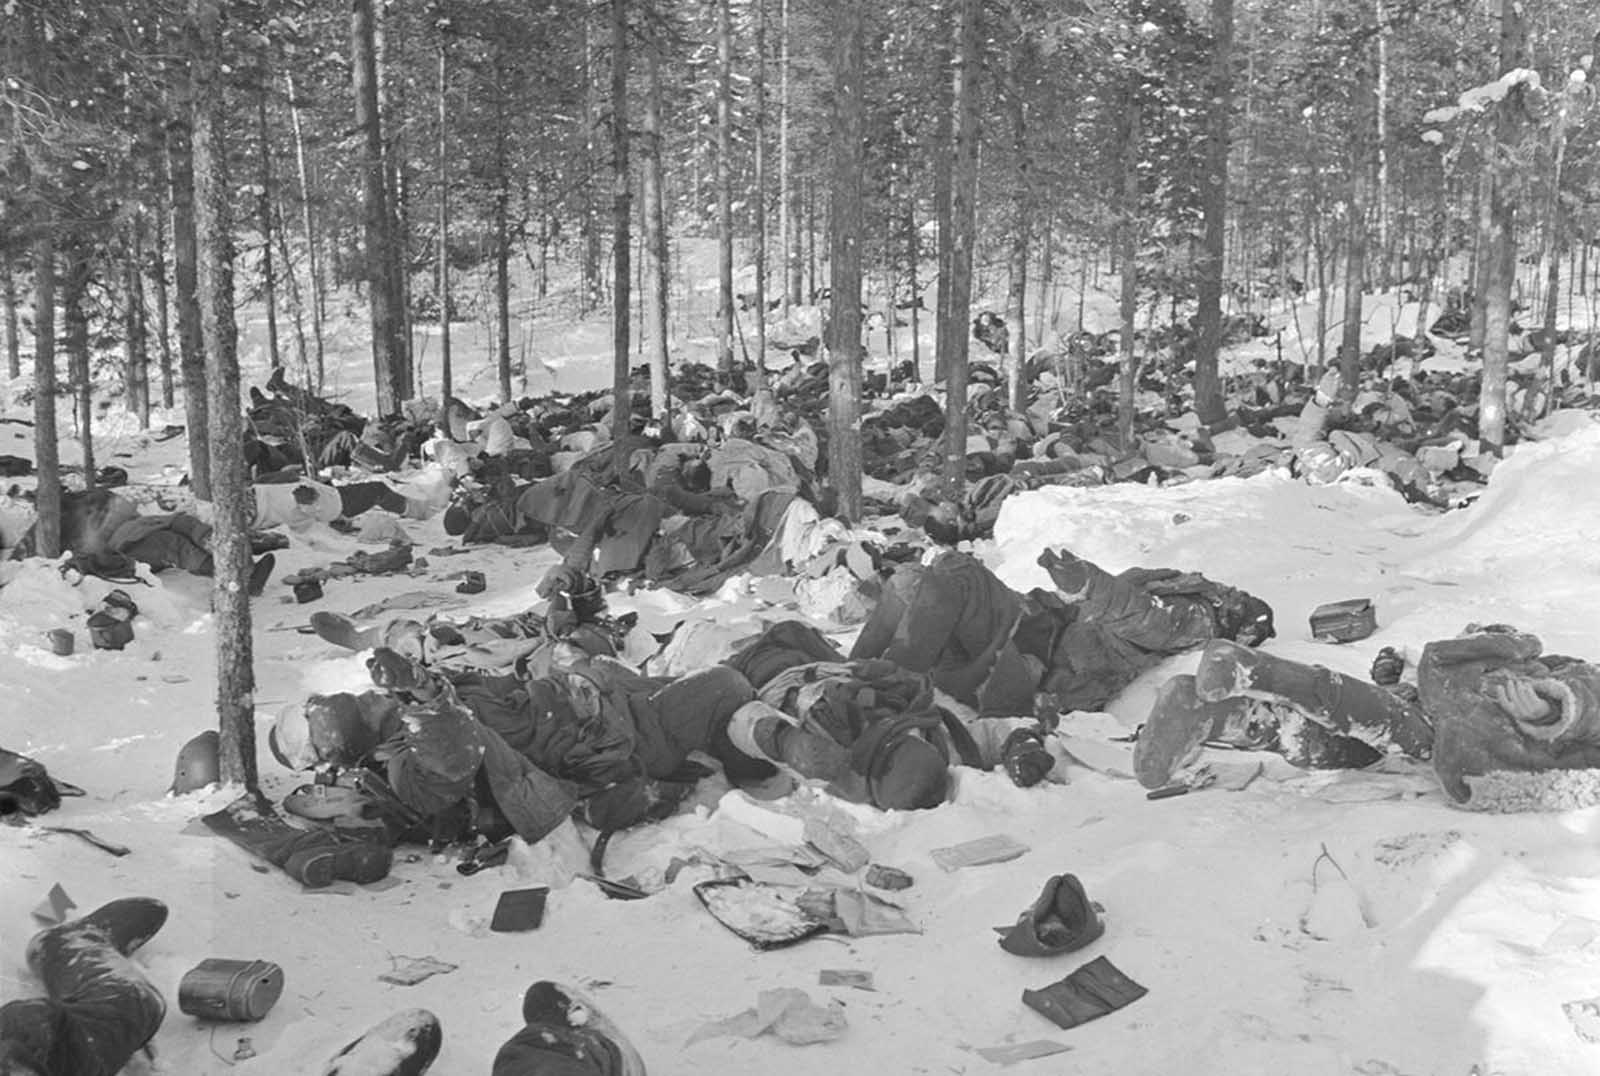 Some of an estimated 400 Russian soldiers killed in a battle, on February 1, 1940.